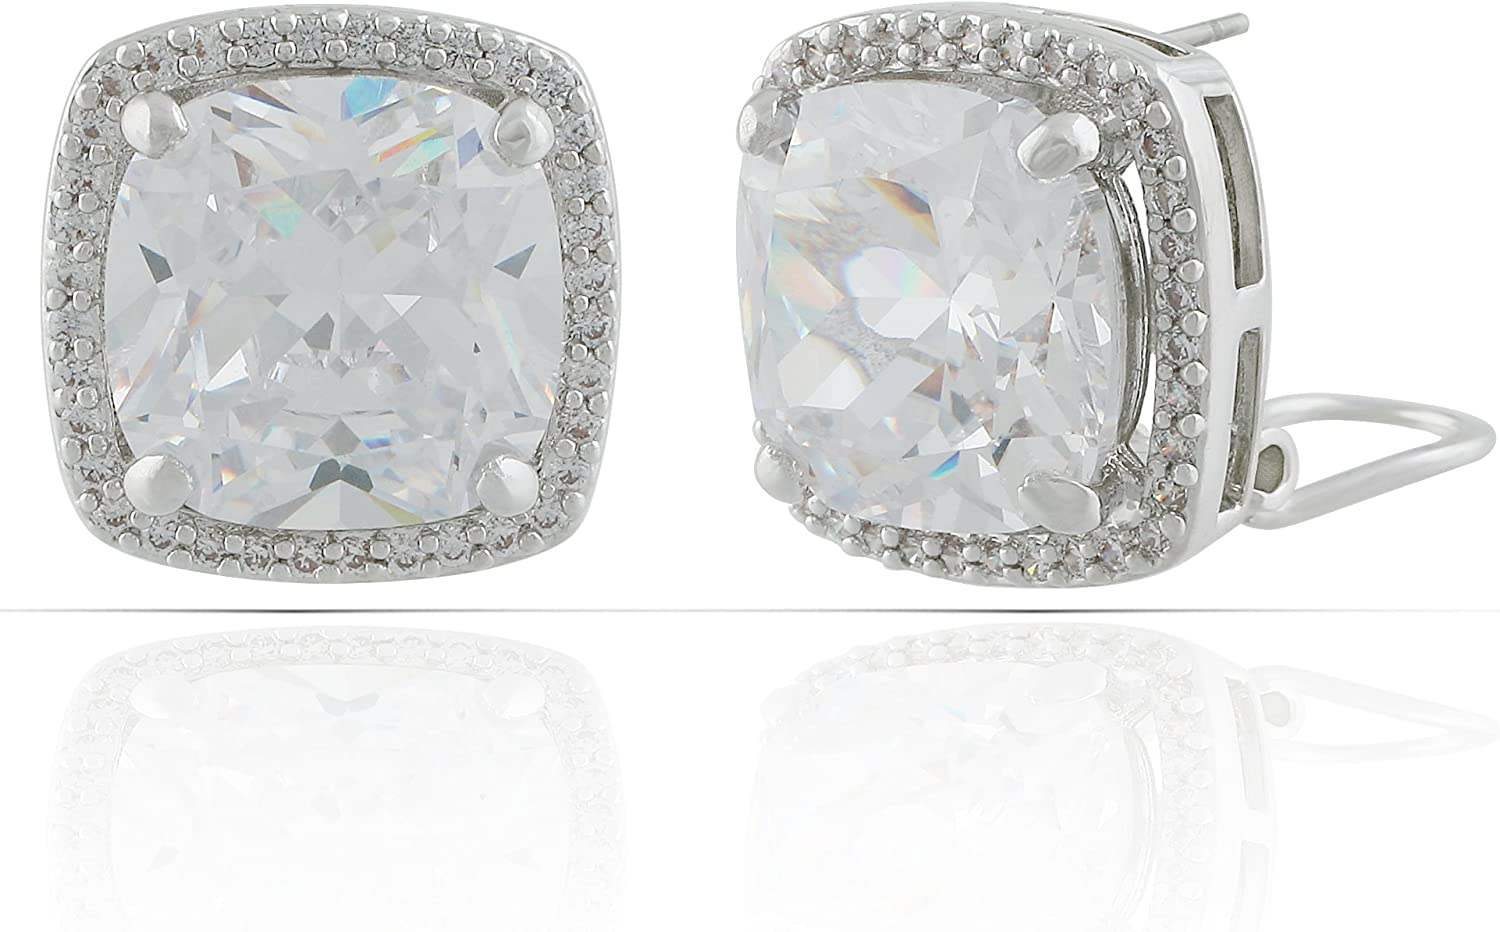 JanKuo Jewelry Rhodium Plated Cushion Cut Halo Cubic Zirconia French Clip Earrings